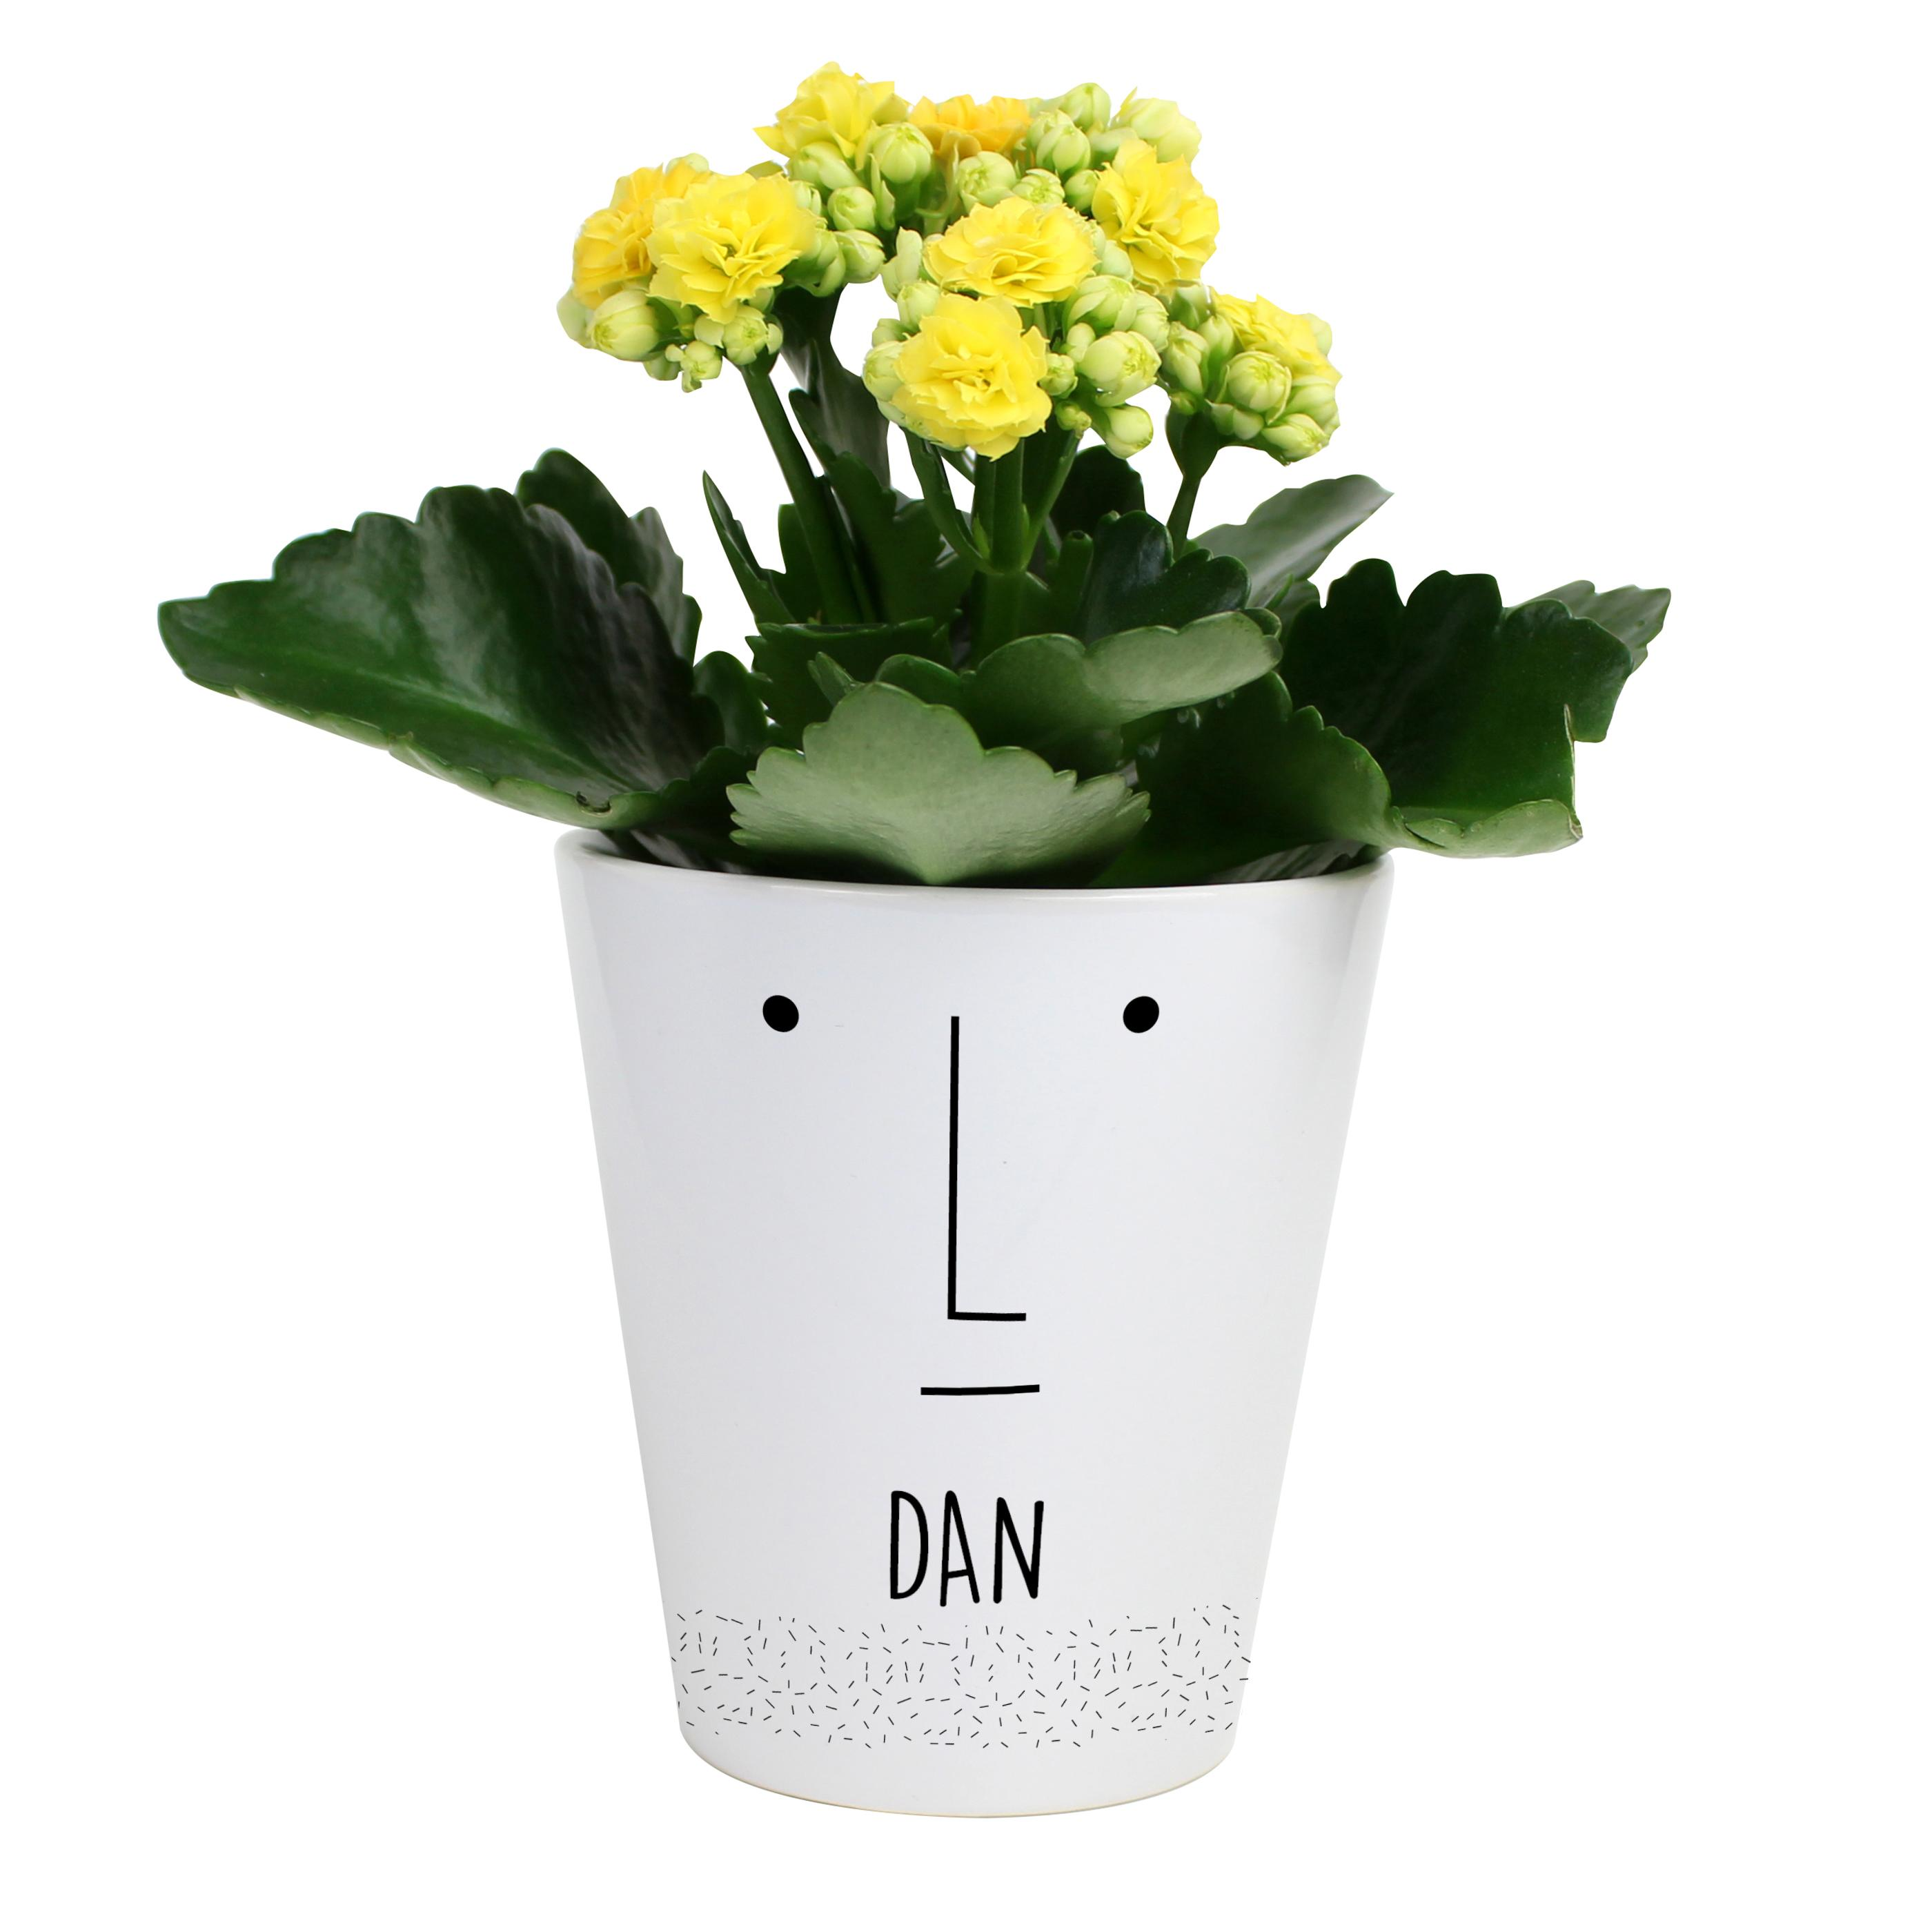 Mr Face personalised plant pot